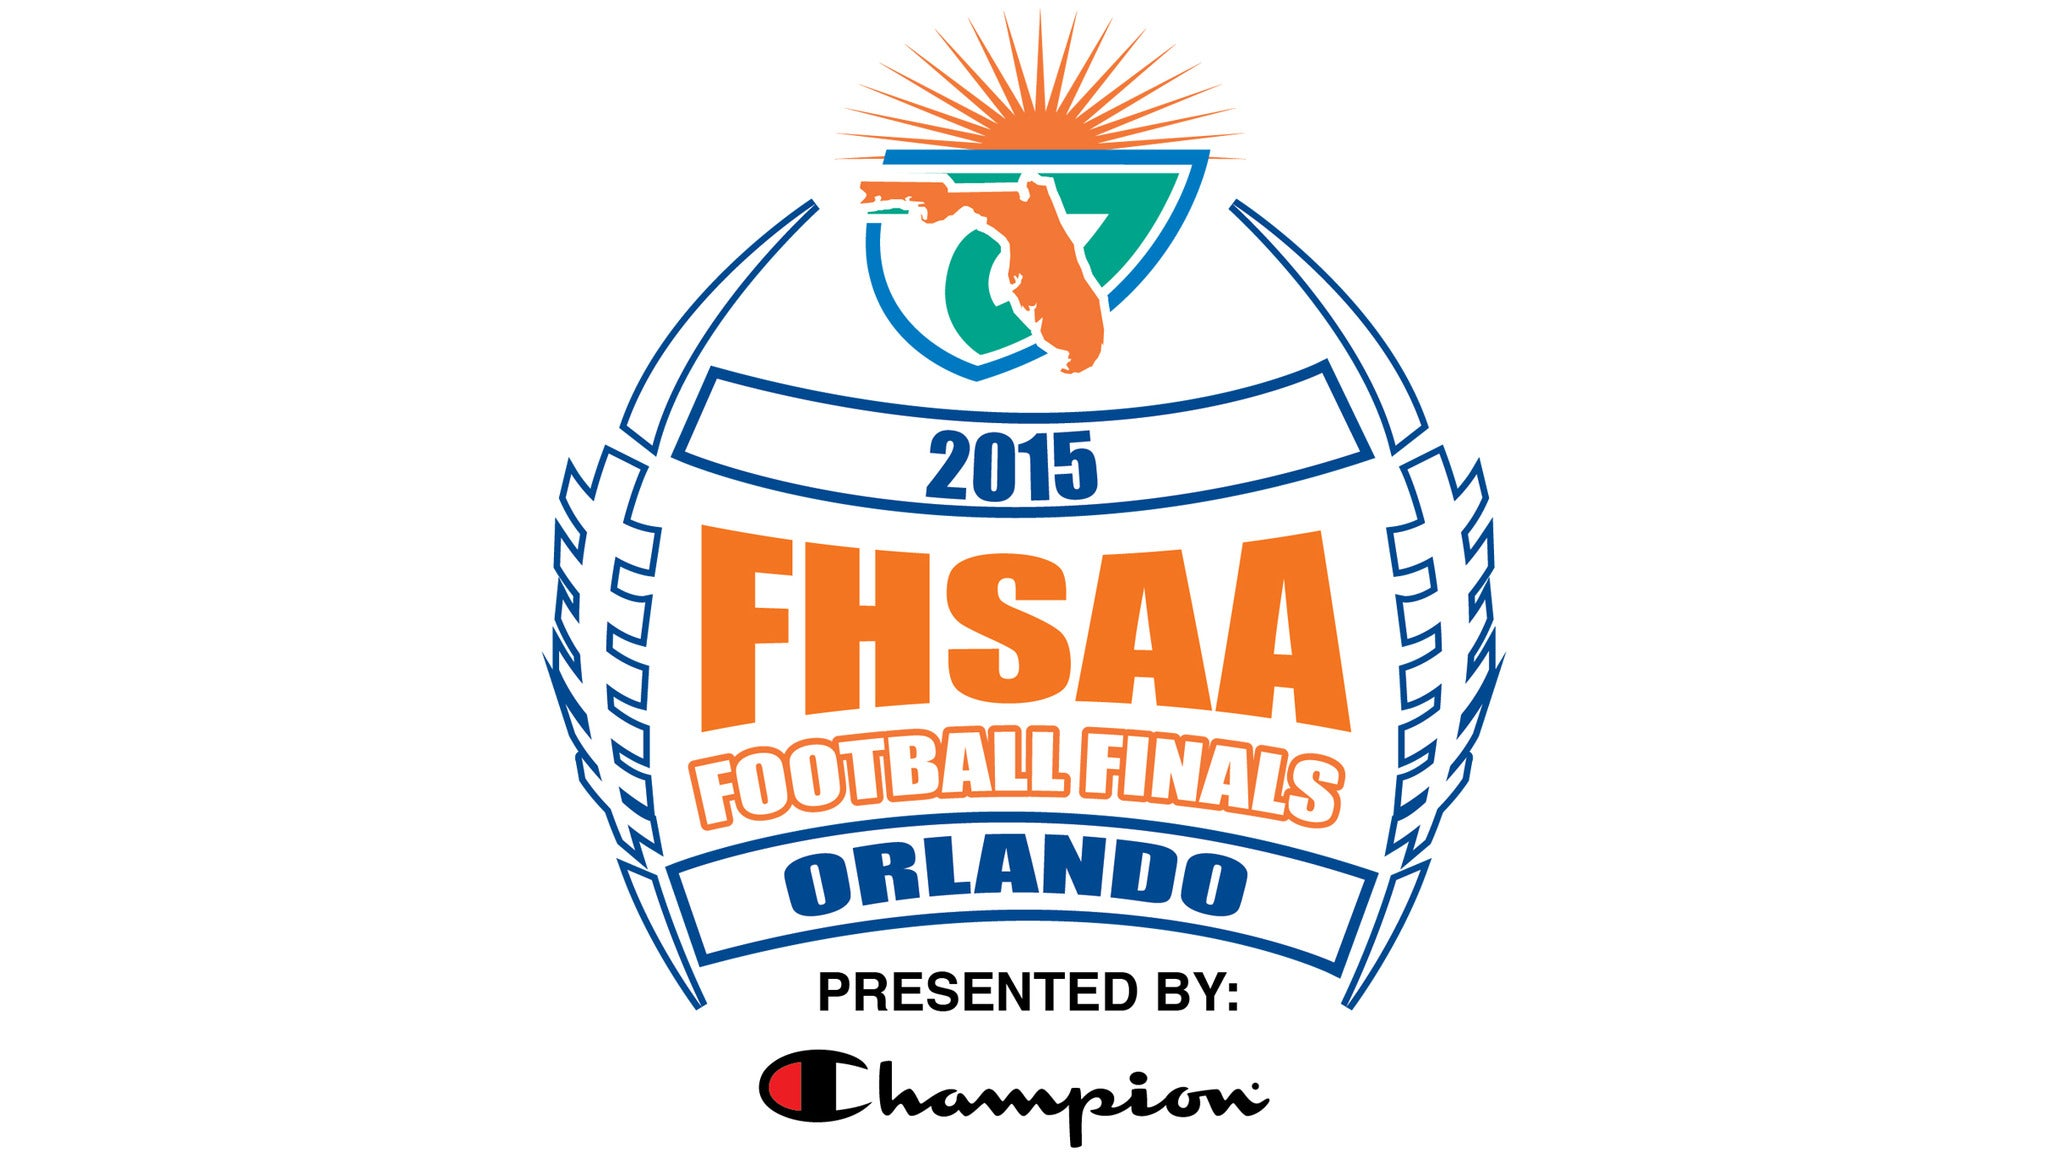 FHSAA Class 2A Football State Championship at Velvet Lounge